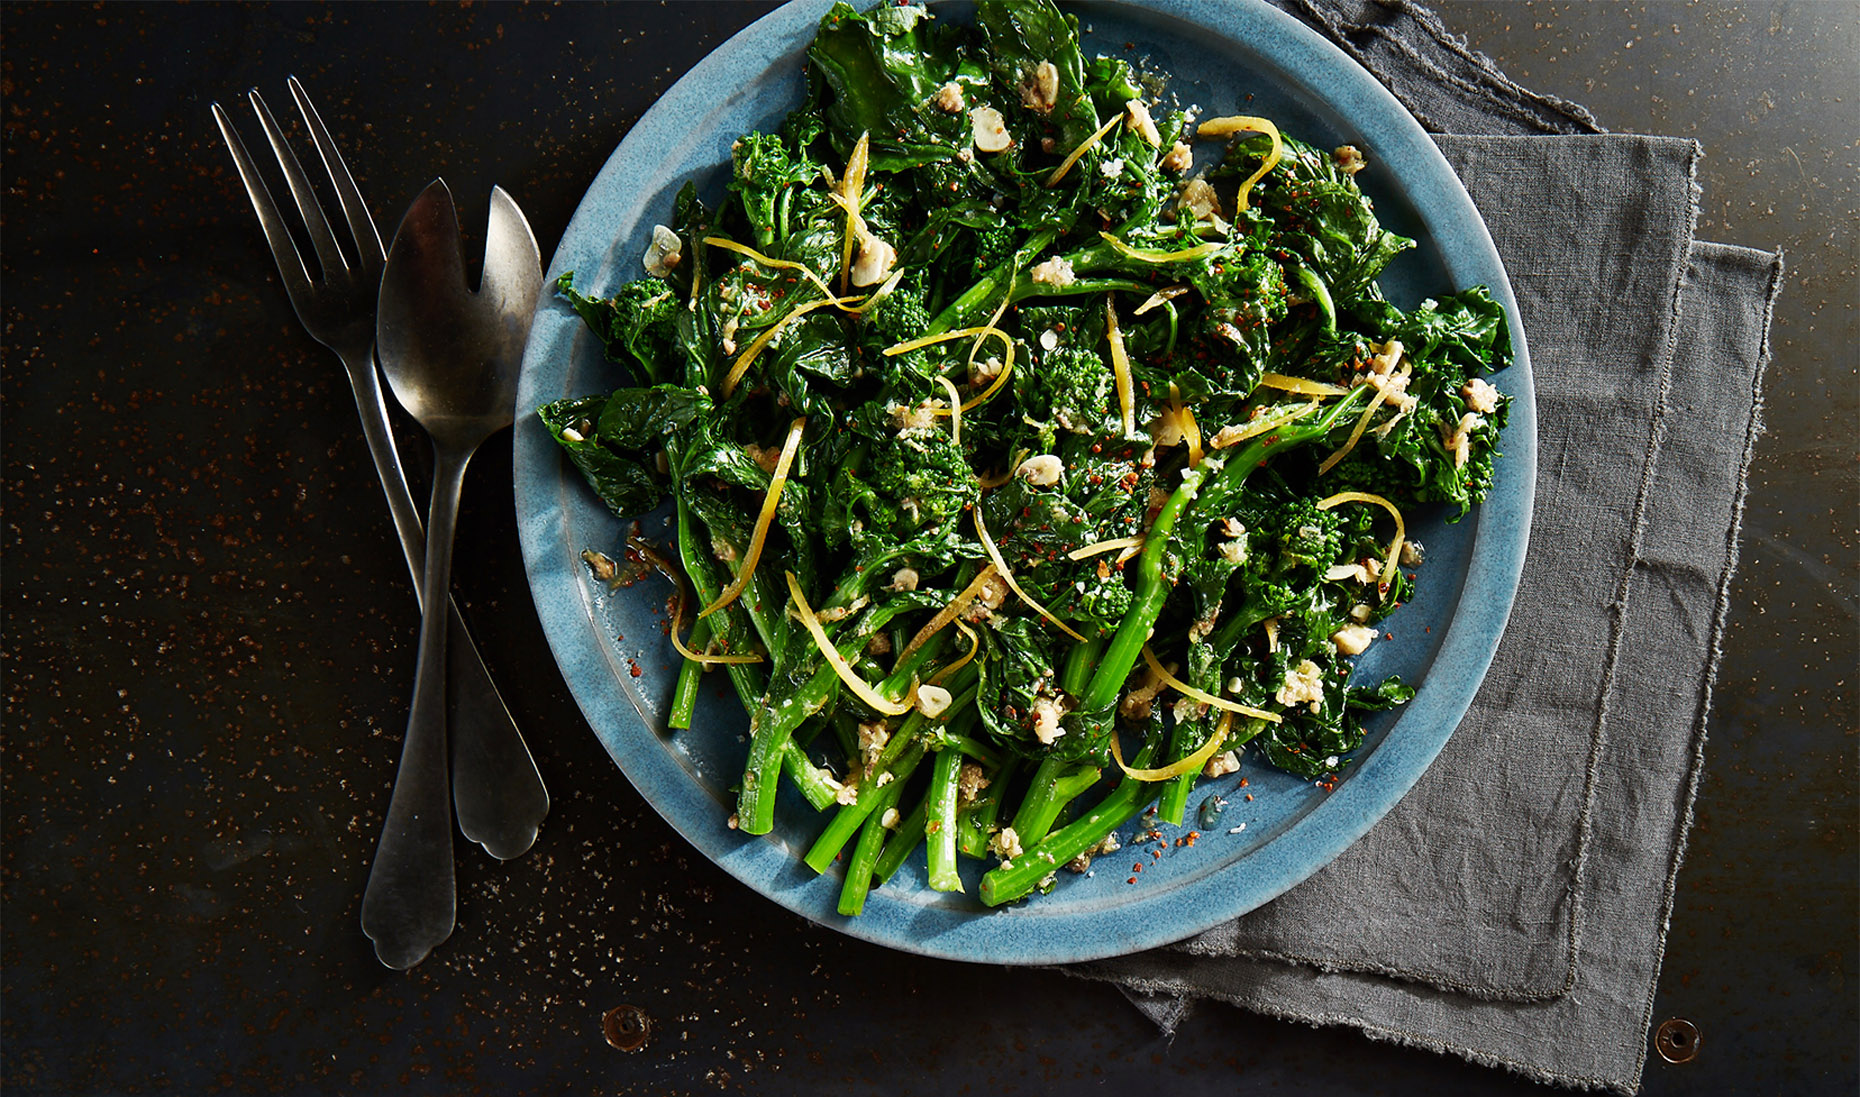 AlanCampbellPhotography, Broccoli Rabe recipe SeasonCookbook